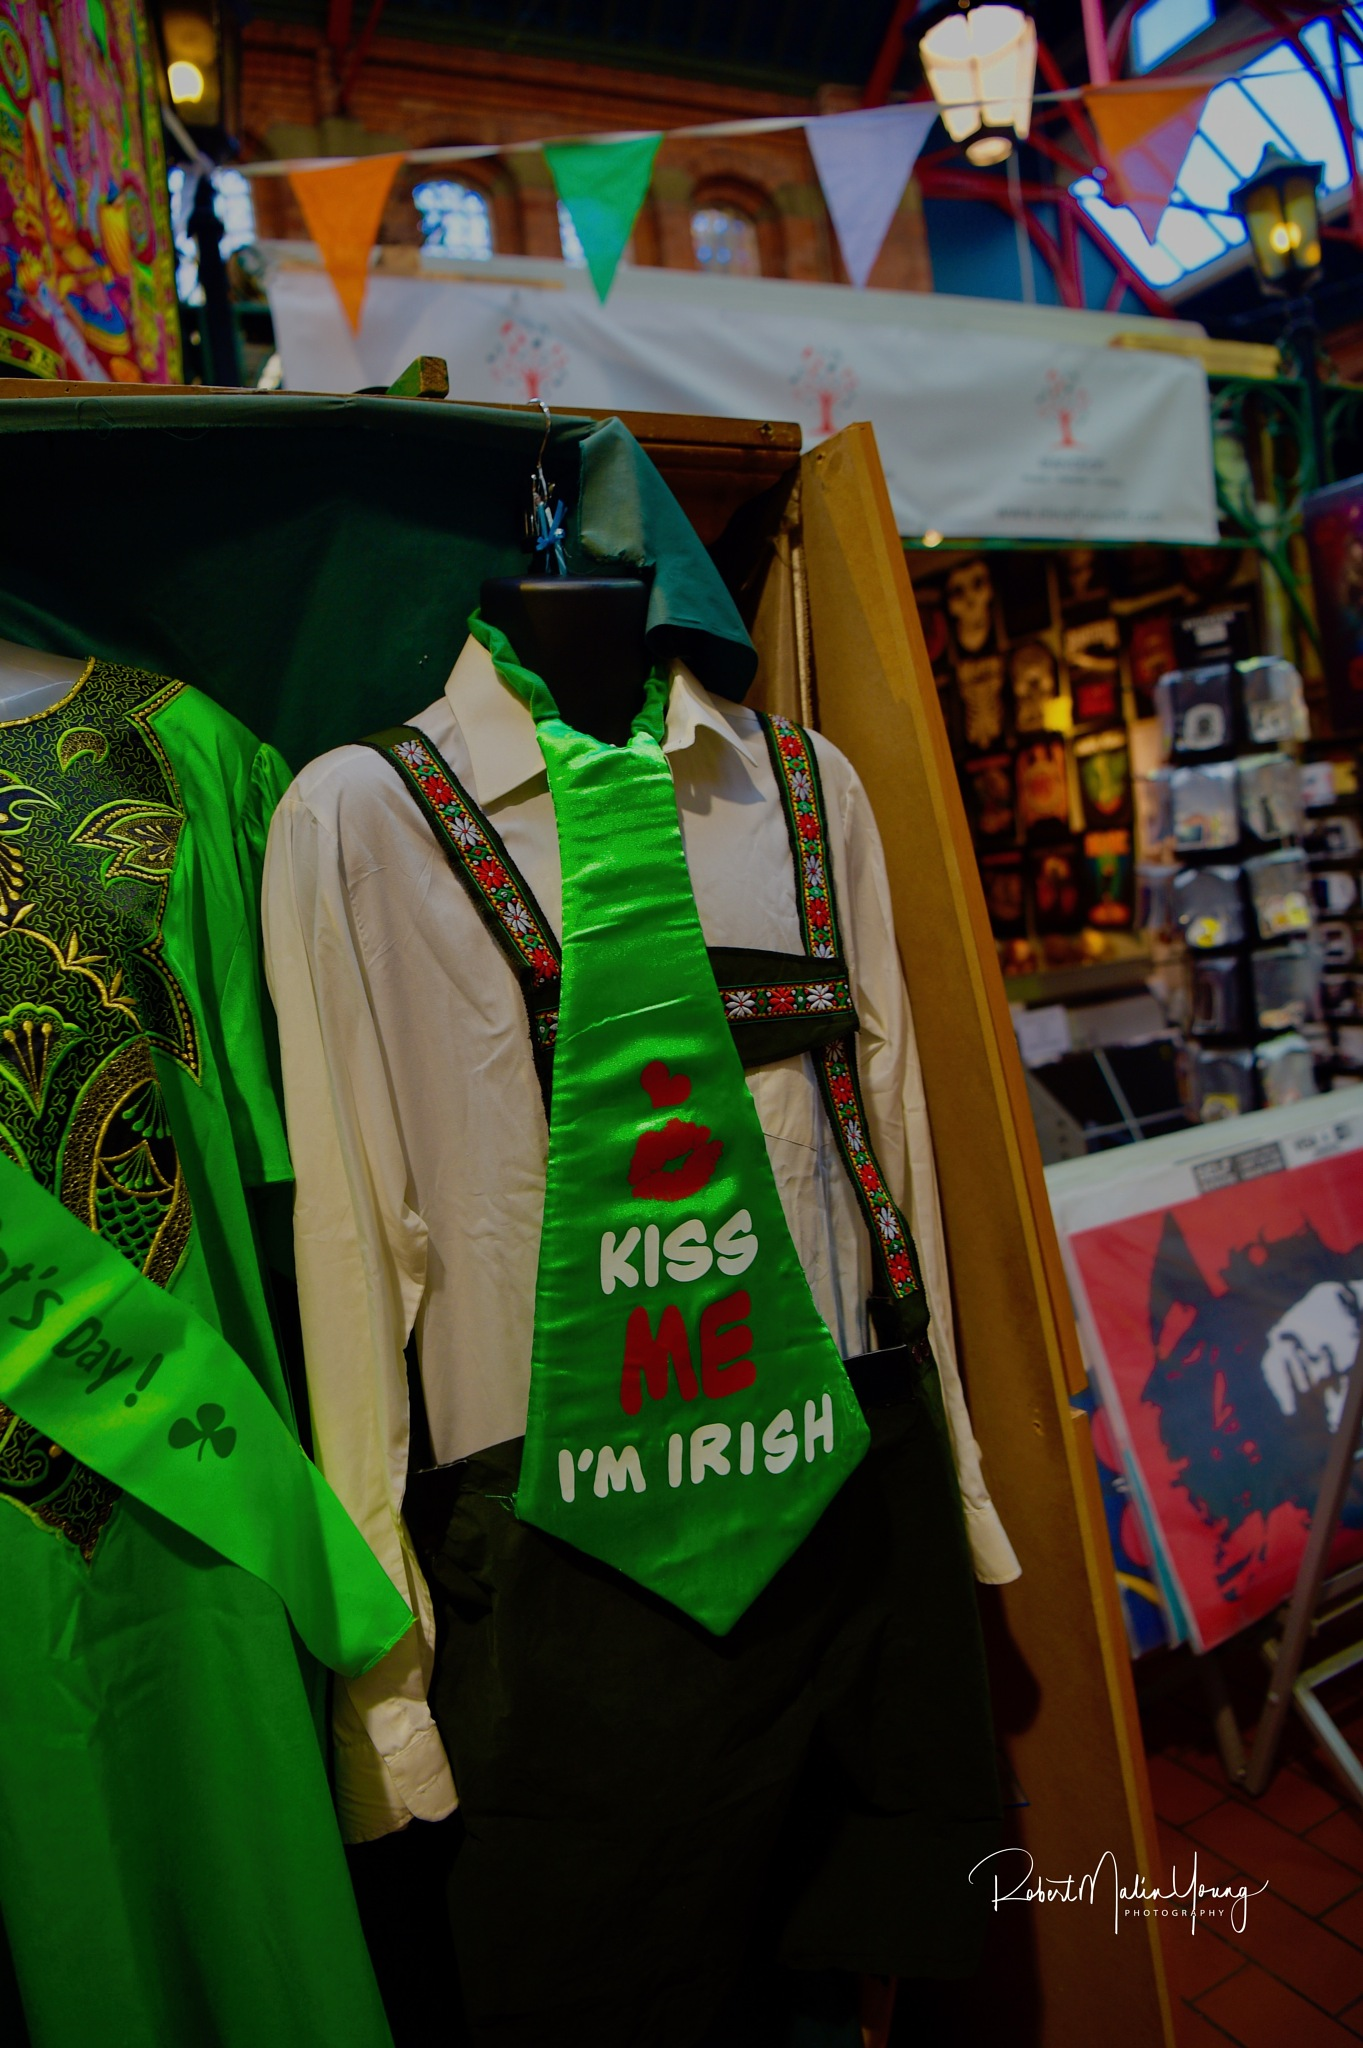 Dublin - St. Paddy's day - 2018 by Robert Malin Young